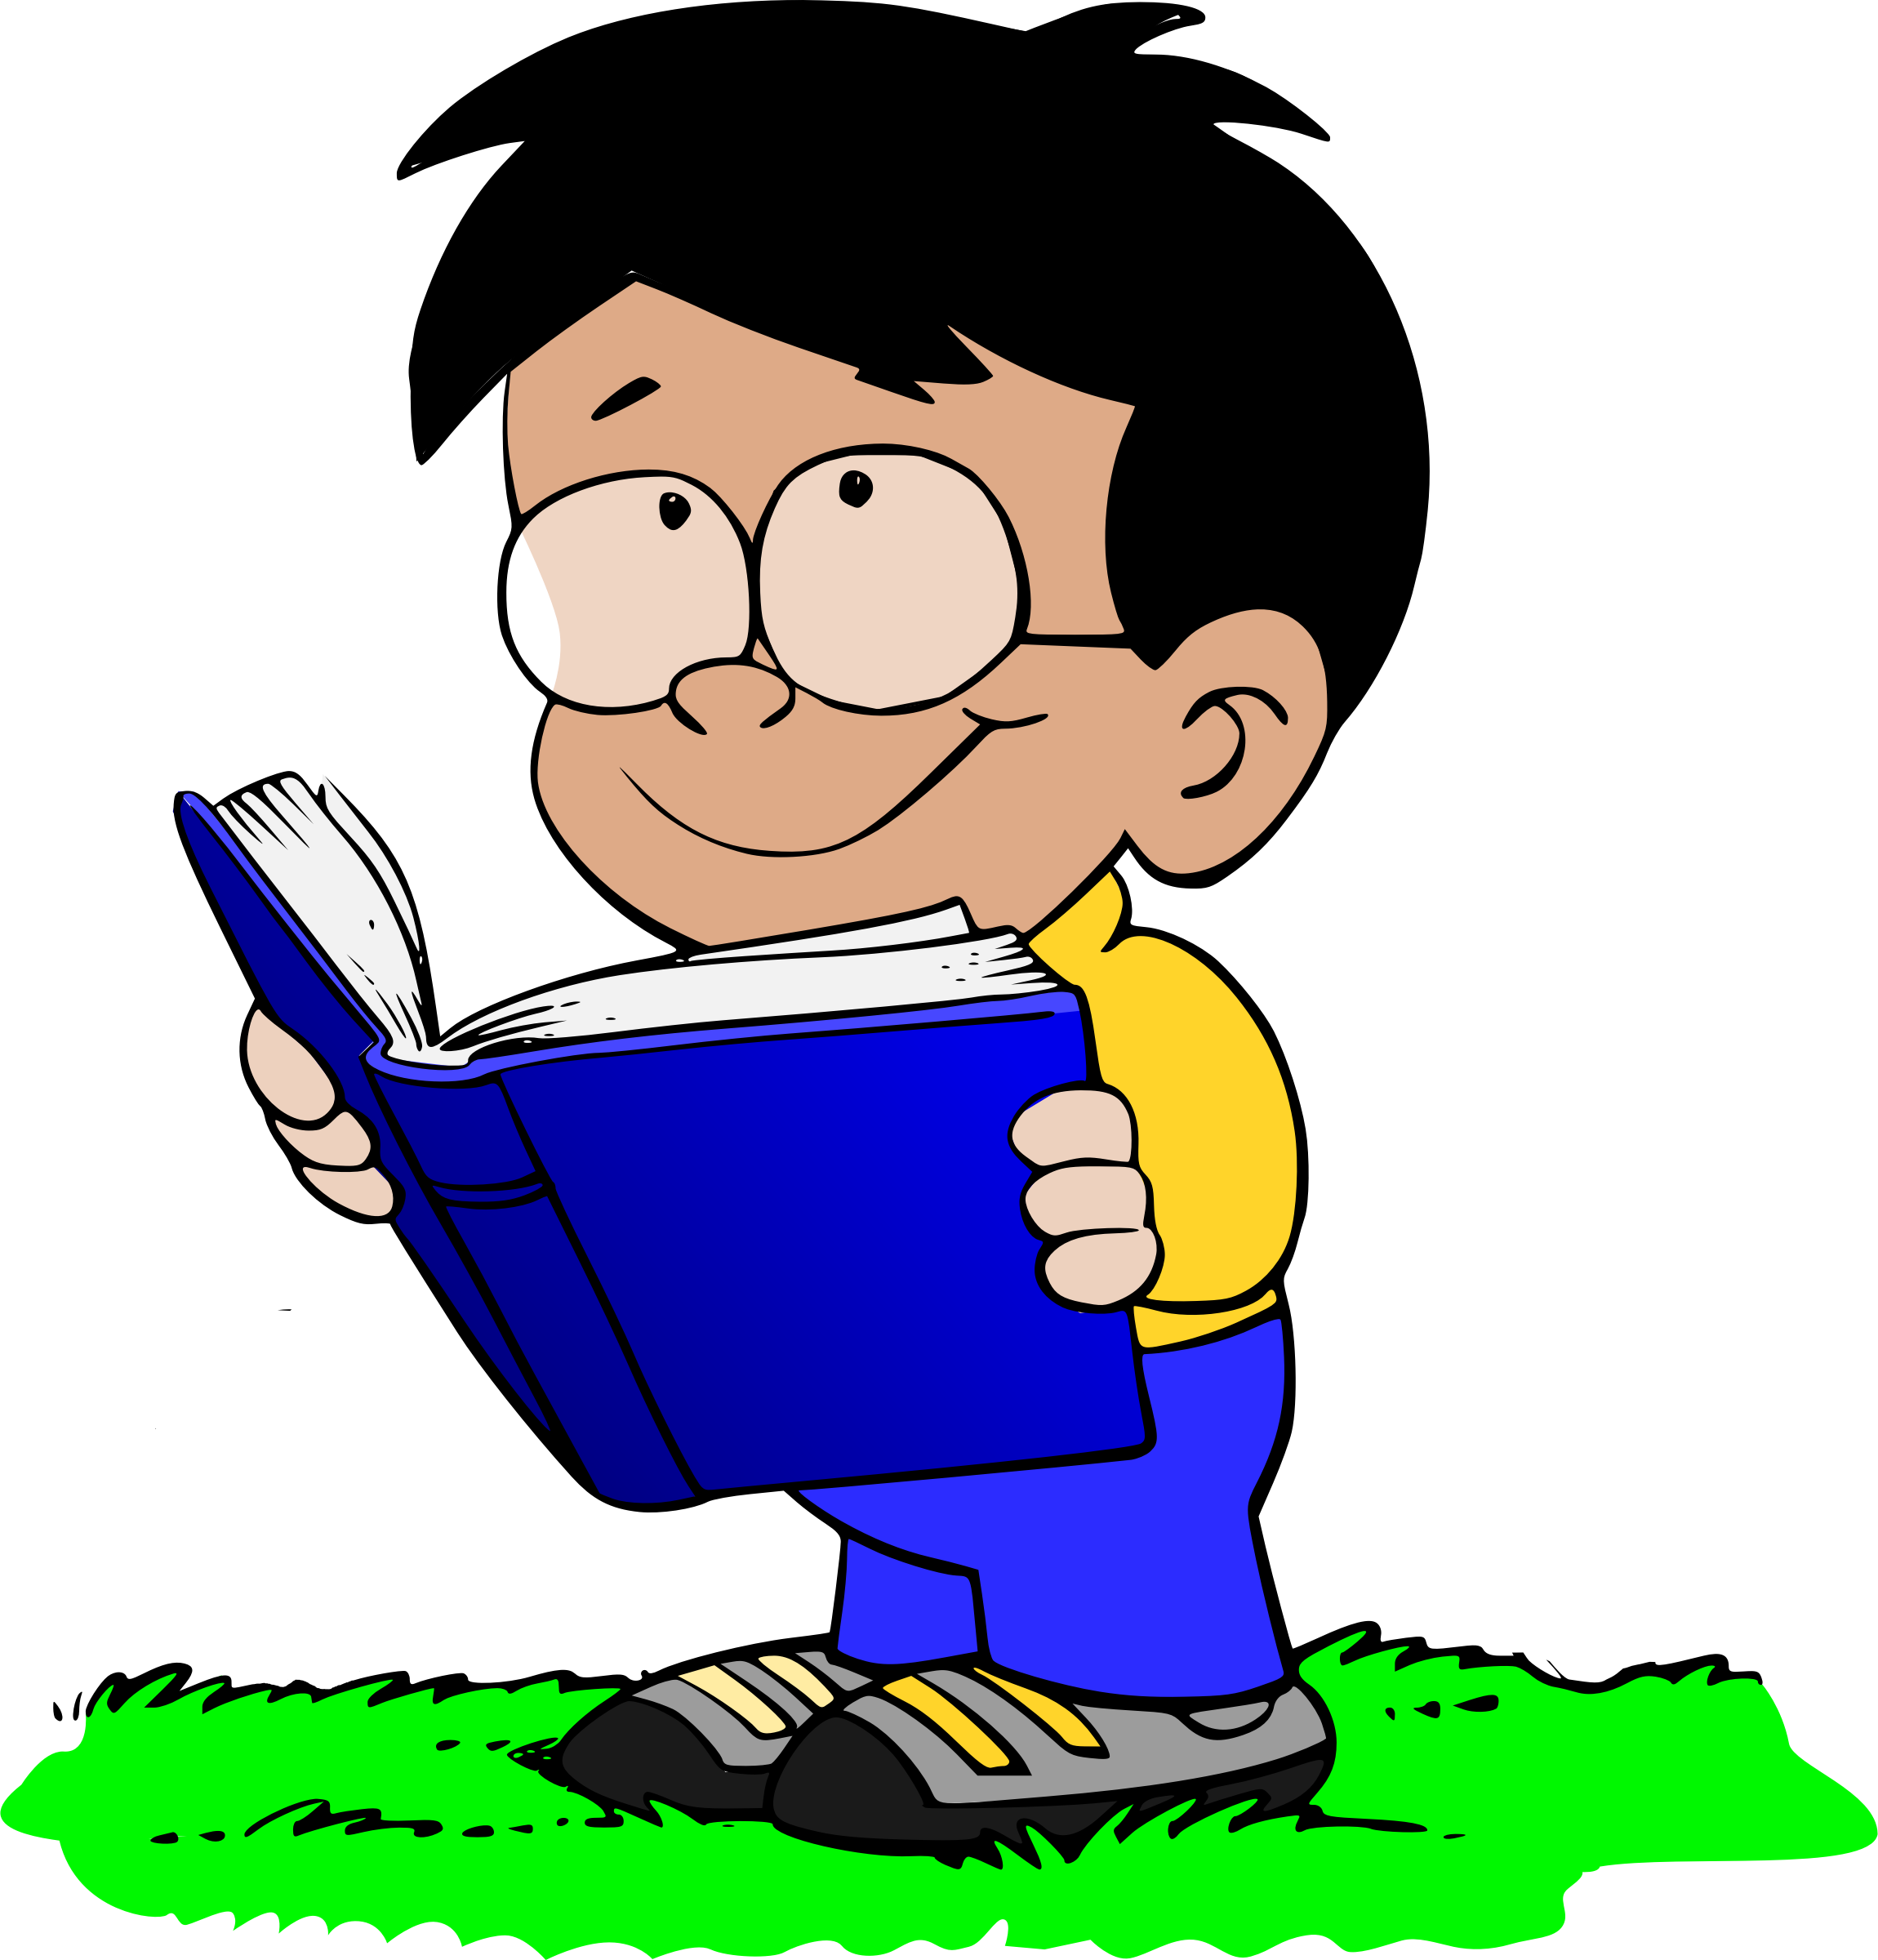 Book read clipart graphic royalty free library Clipart - Boy with Book graphic royalty free library